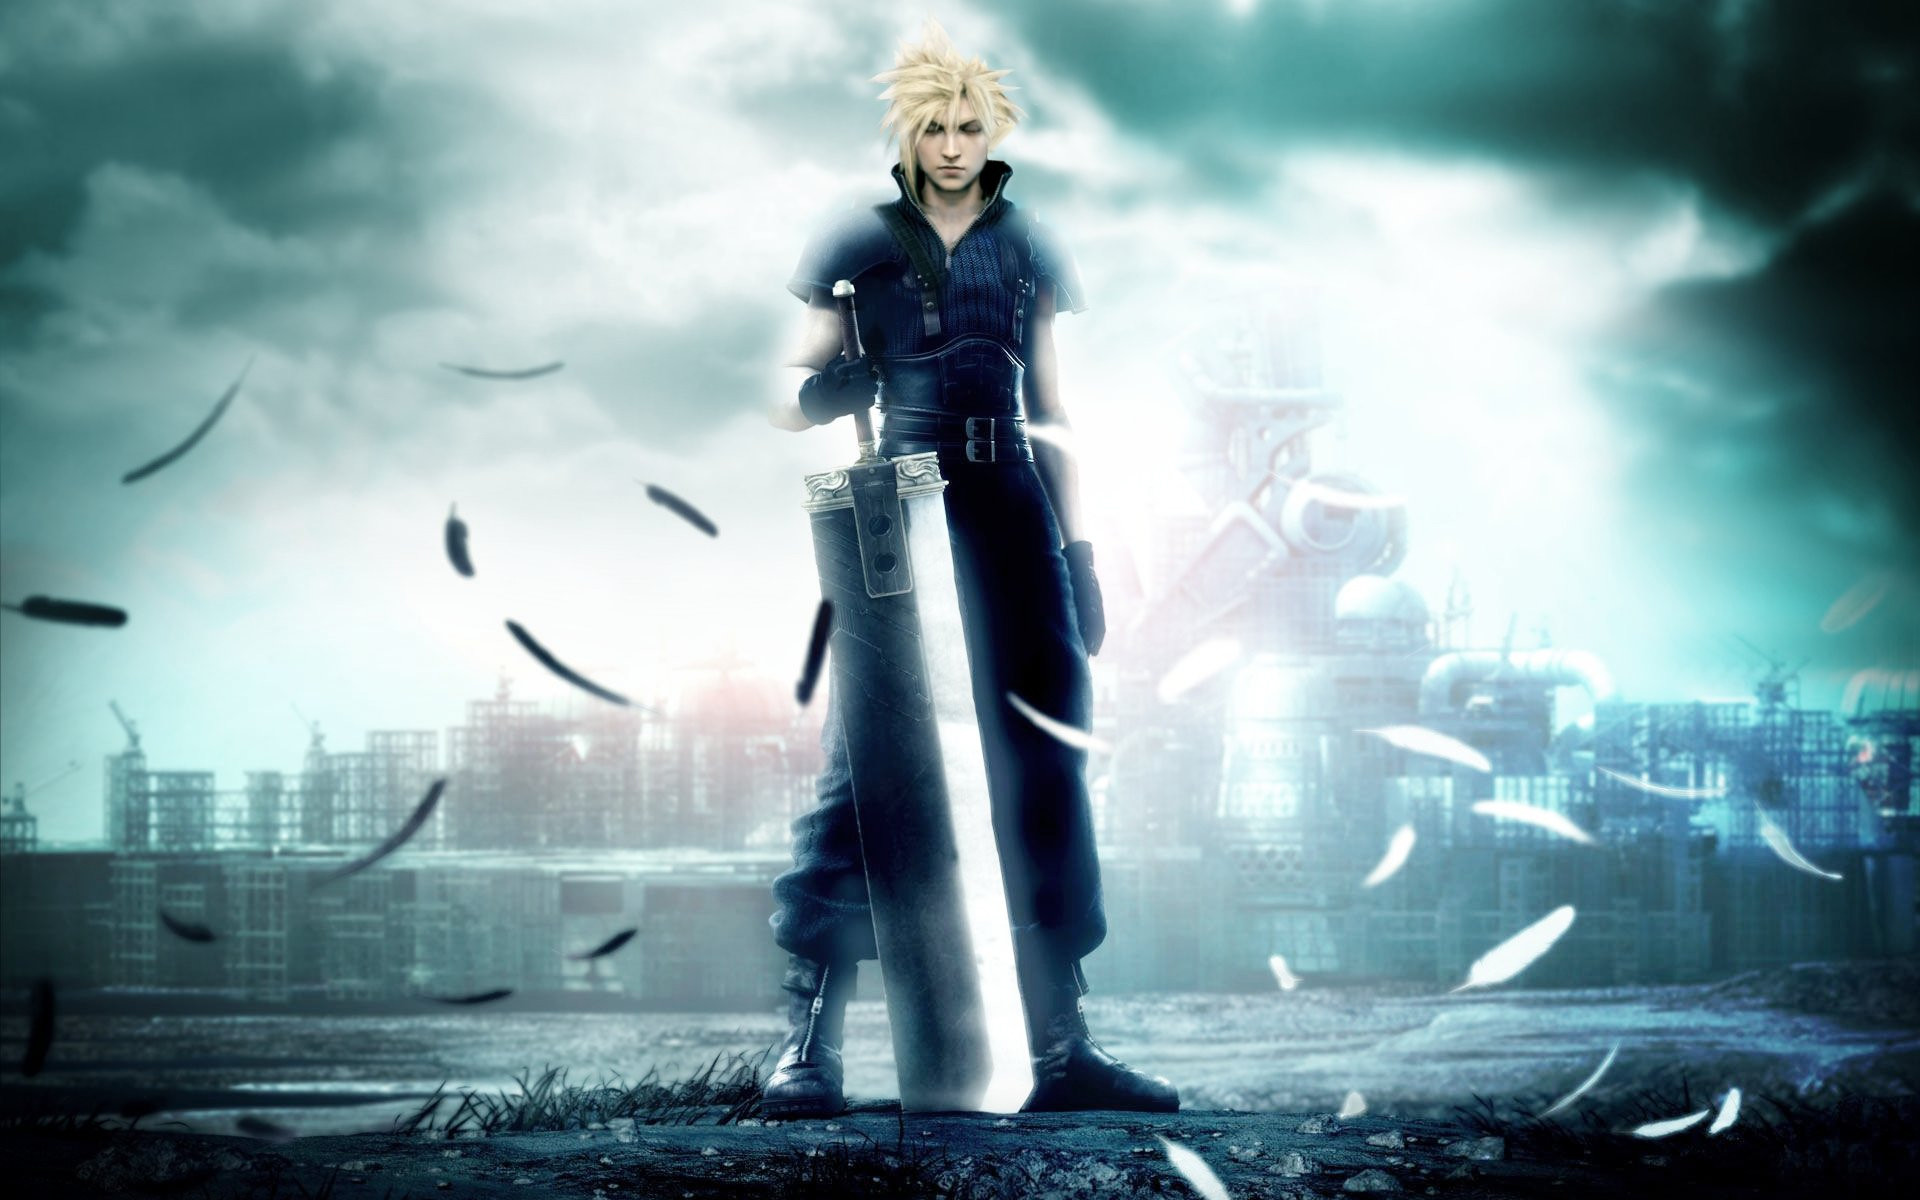 1920x1200 Final Fantasy VII: Advent Children HD Wallpaper | Background Image |   | ID:31592 - Wallpaper Abyss